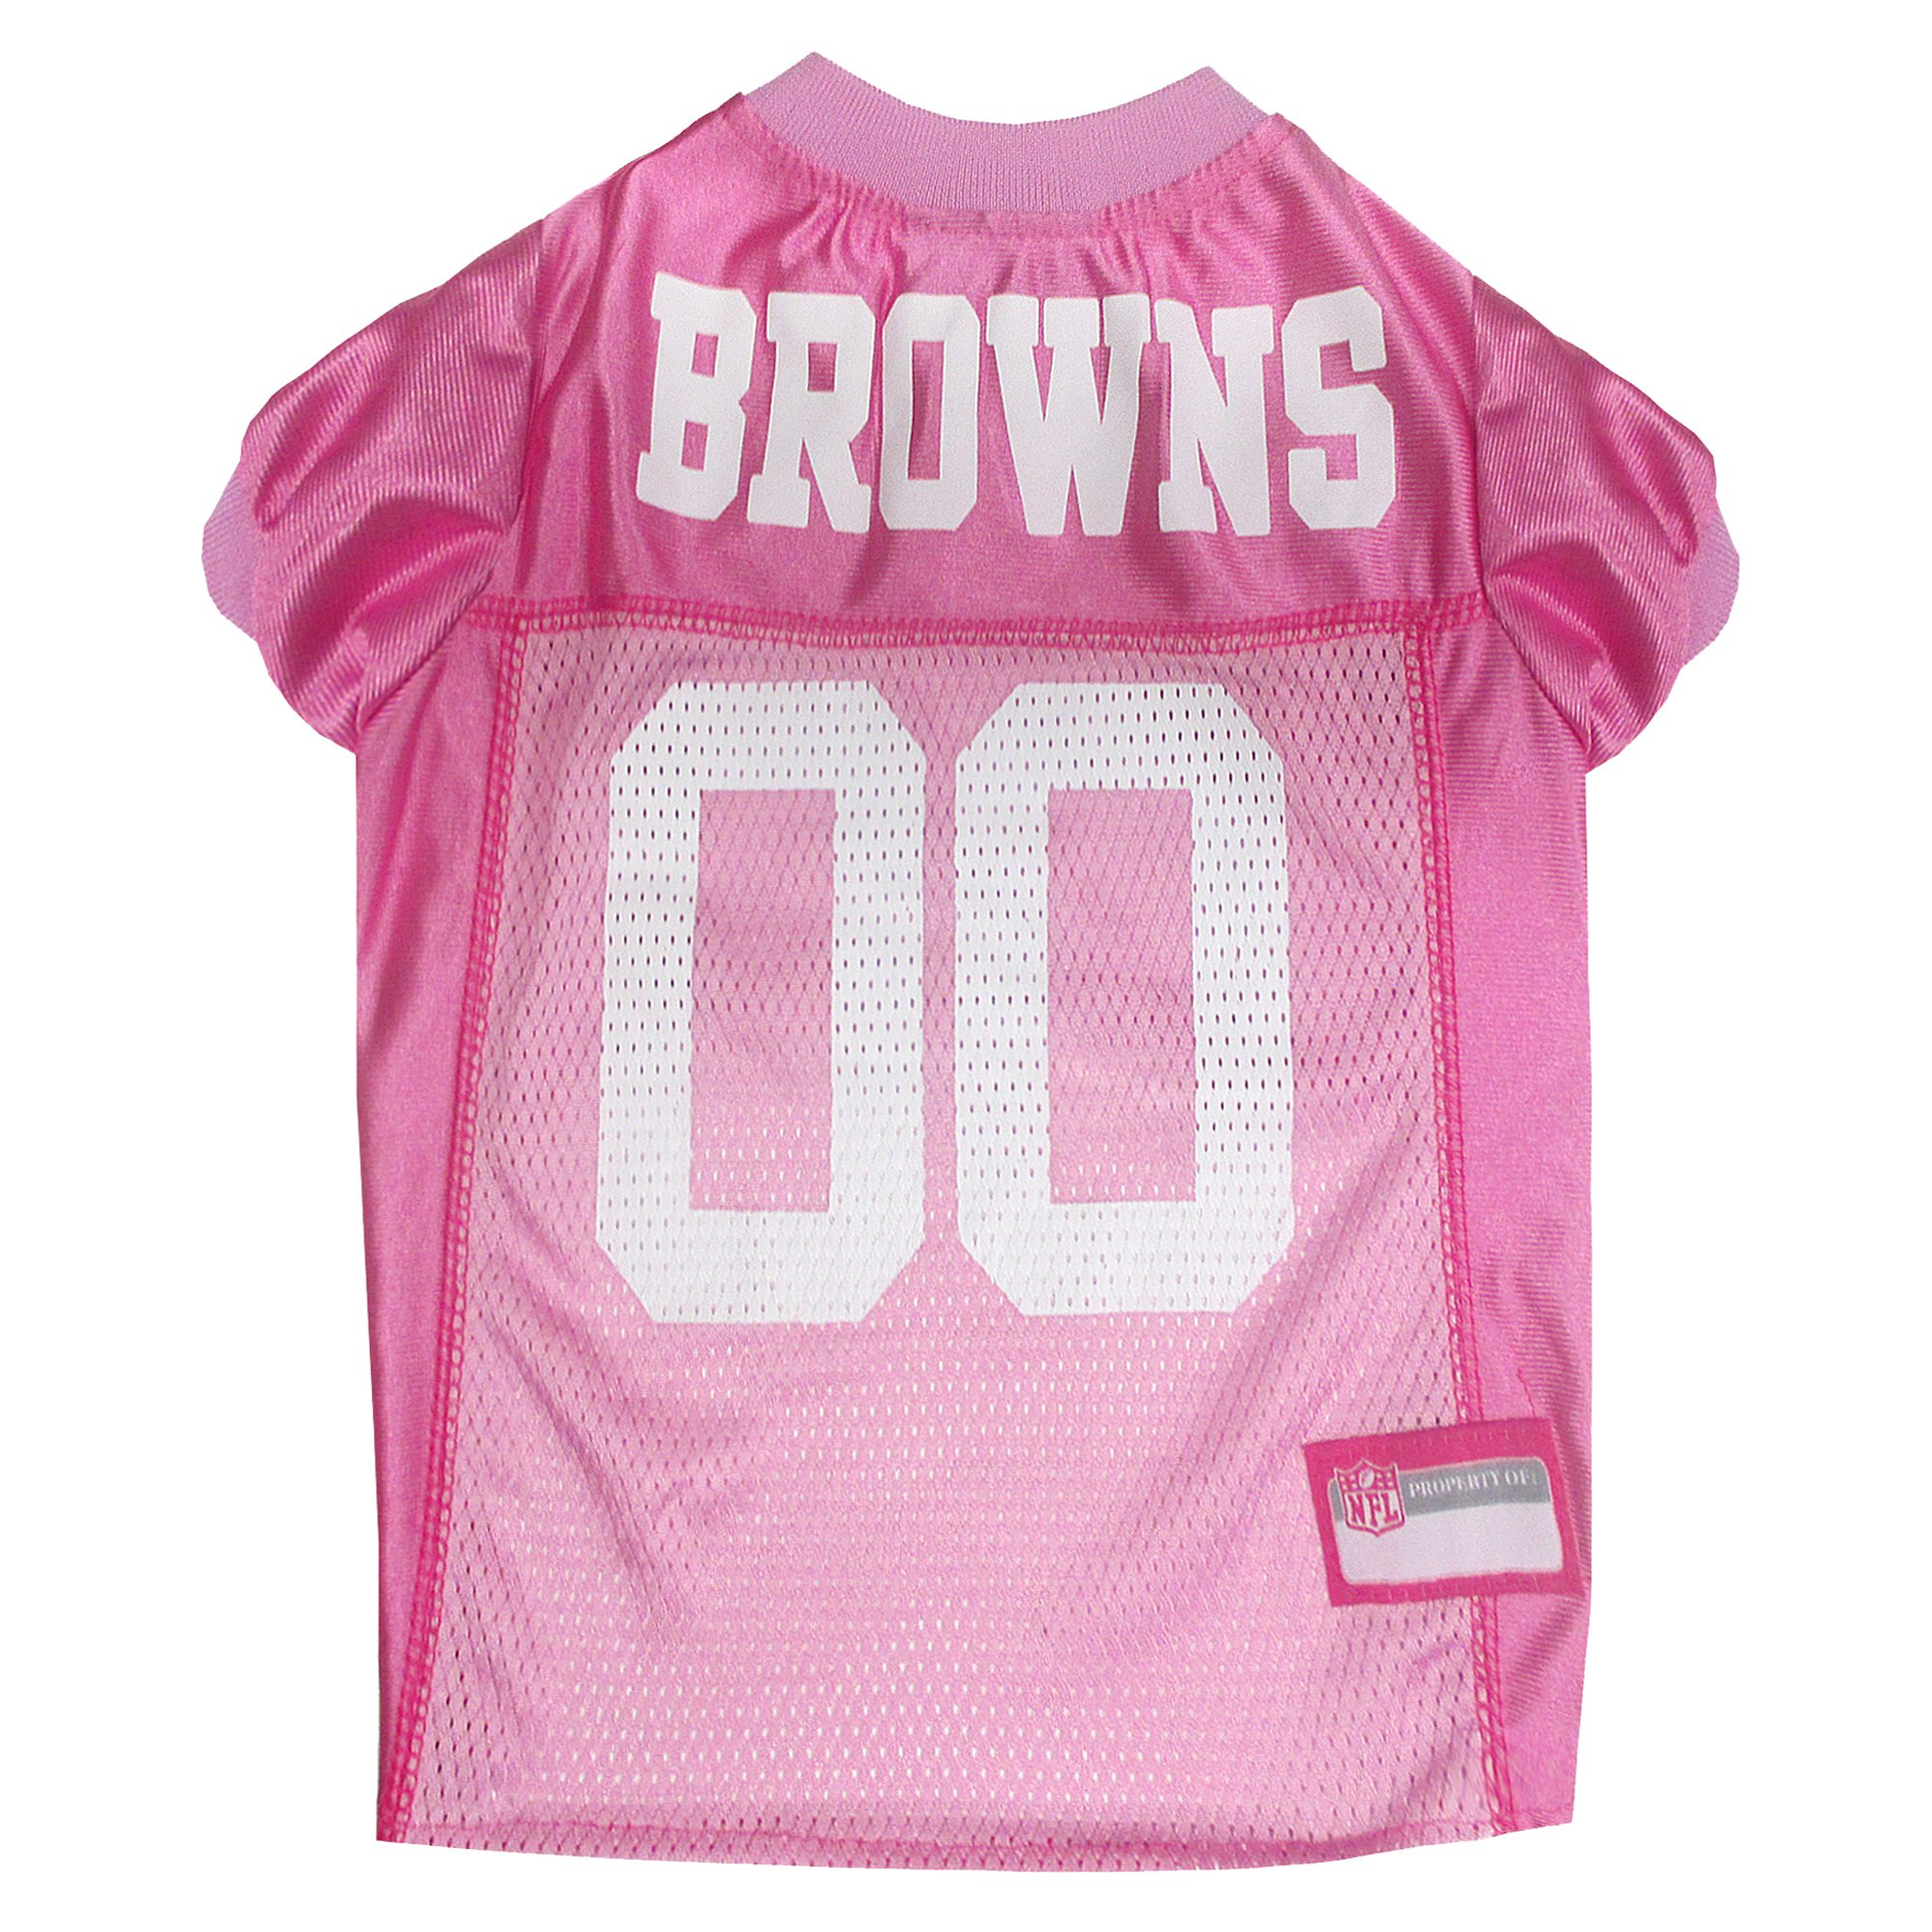 378b7d85b0d Pets First Cleveland Browns NFL Pink Mesh Jersey, Small in 2019 ...